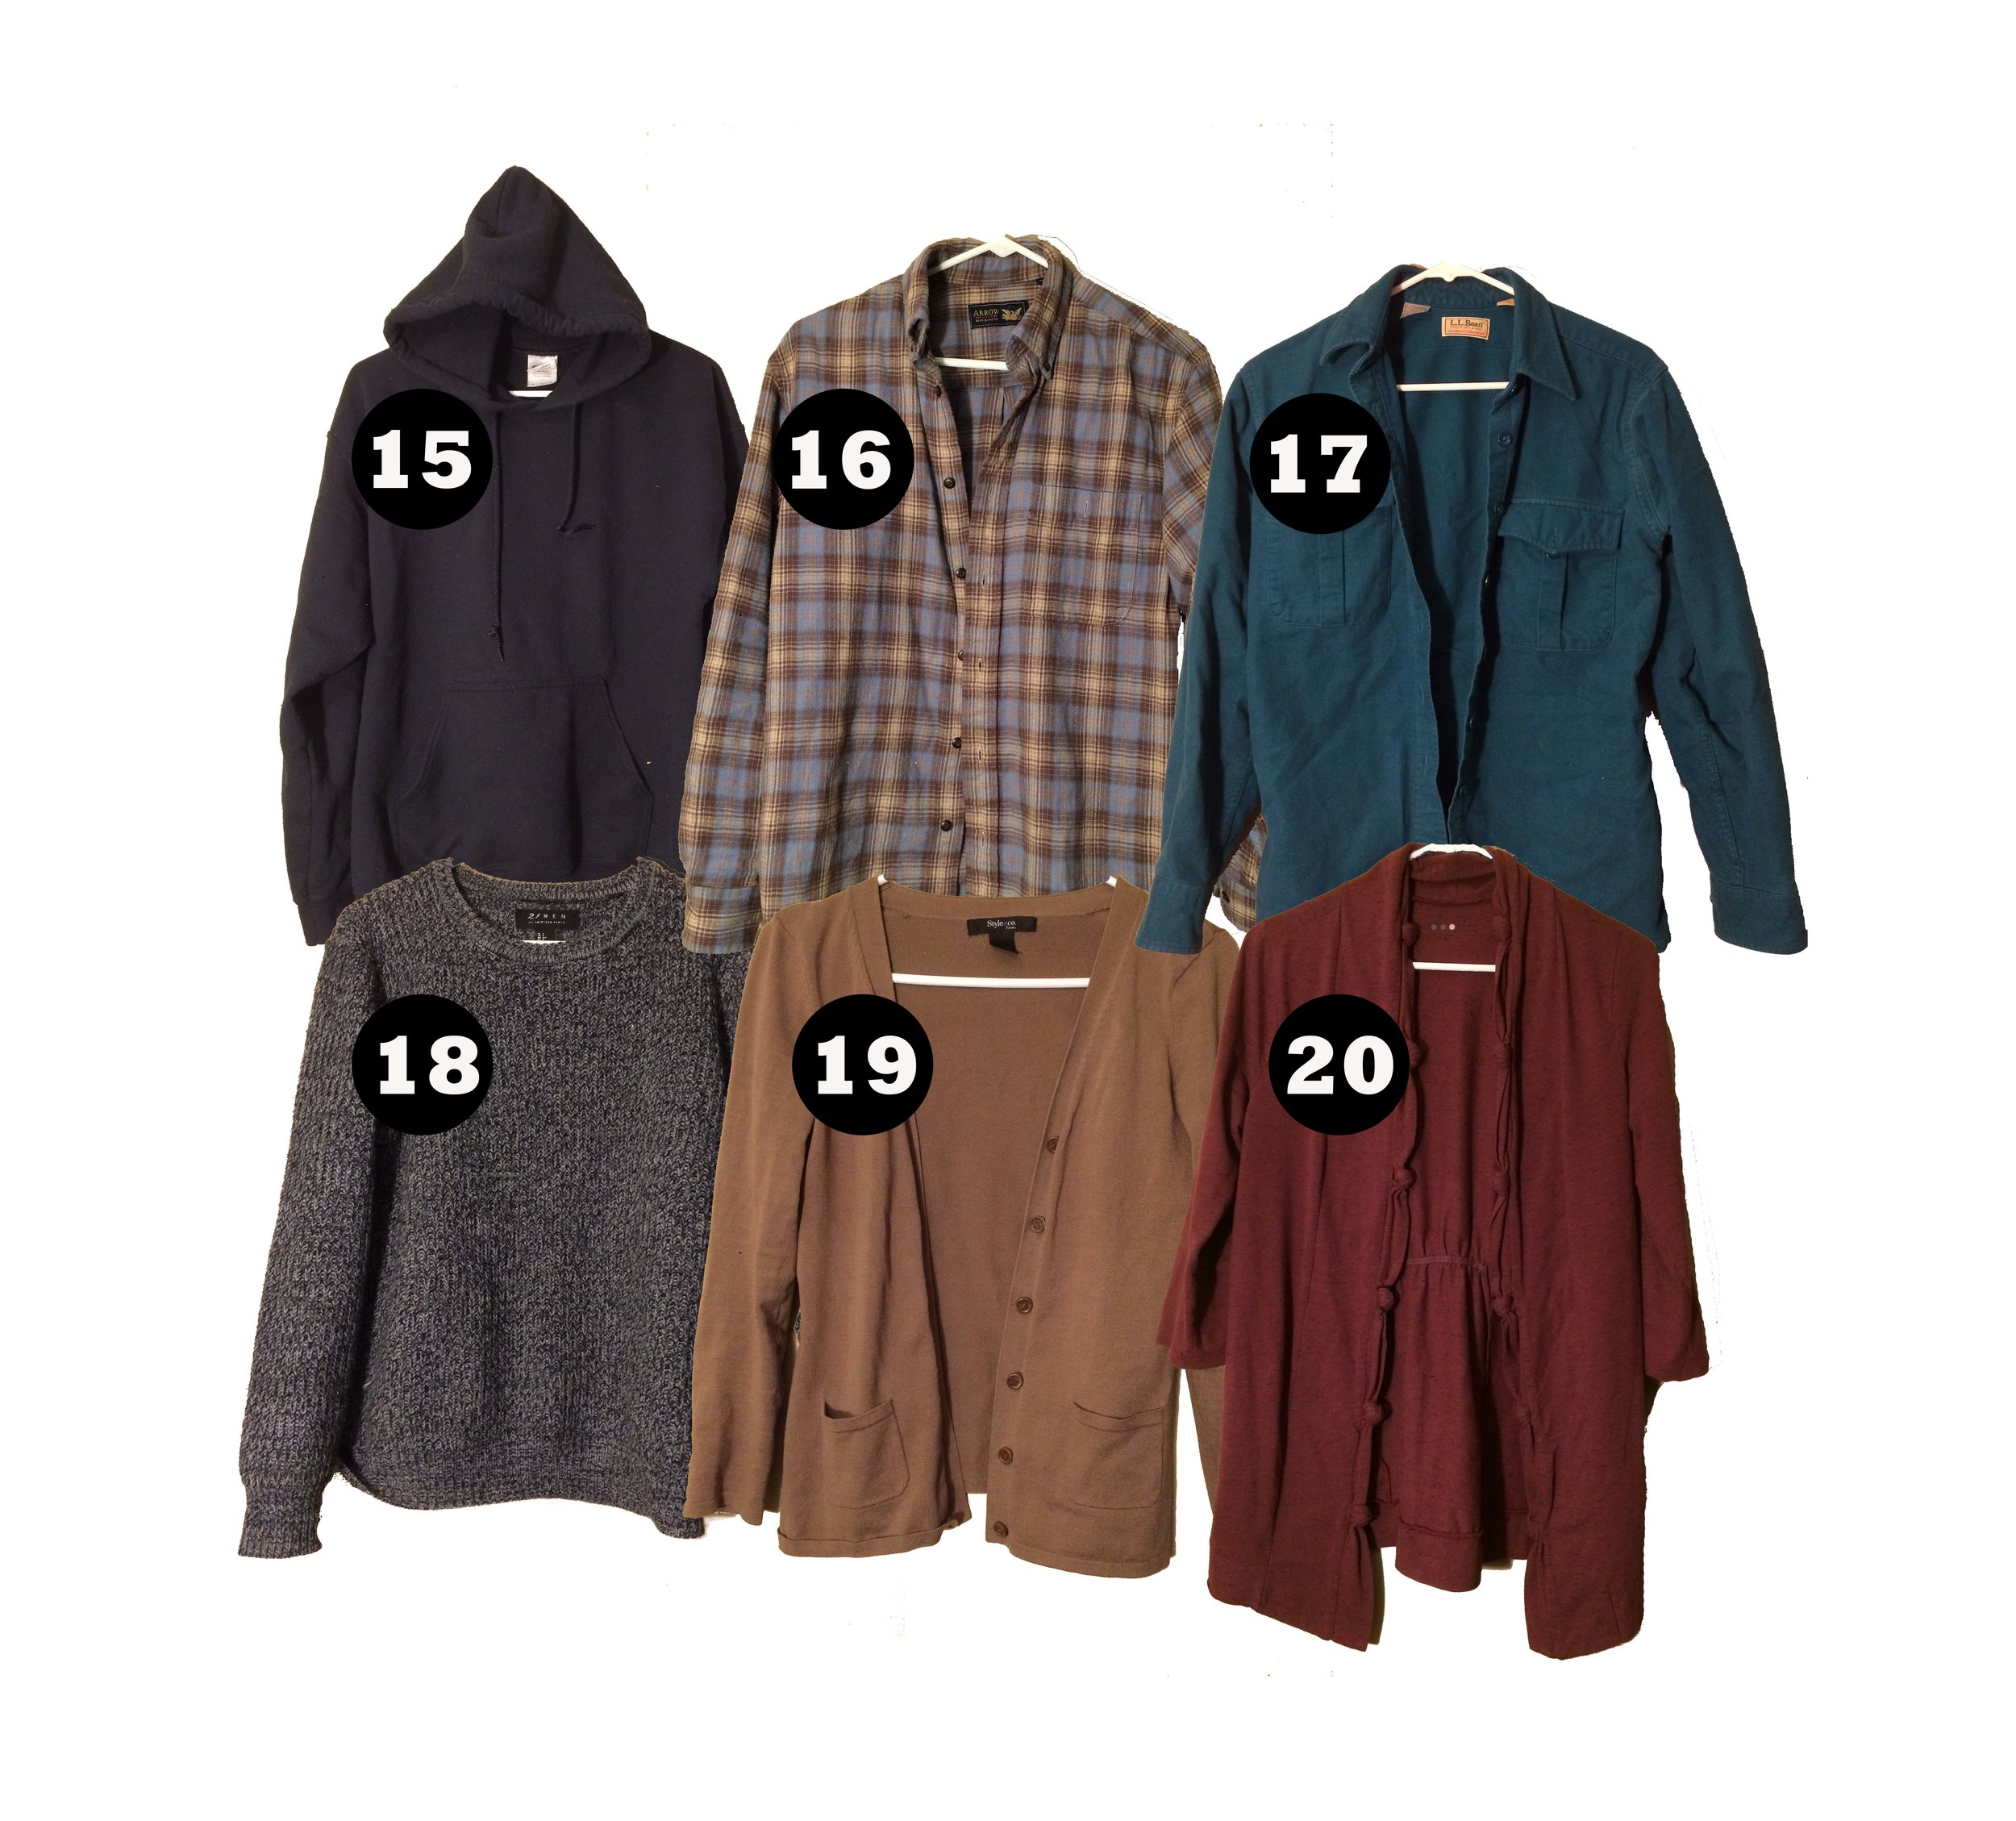 Mid-Layer Tops - A variation of mid-layer tops makes the winter a little more bearable. Items 15-17 are mid-layer tops that I normally wear outside of the office. Items 18-20 are mid-layers that I normally wear to the office.All of these items, besides my flannel and hoodie, will be stored once spring comes around.